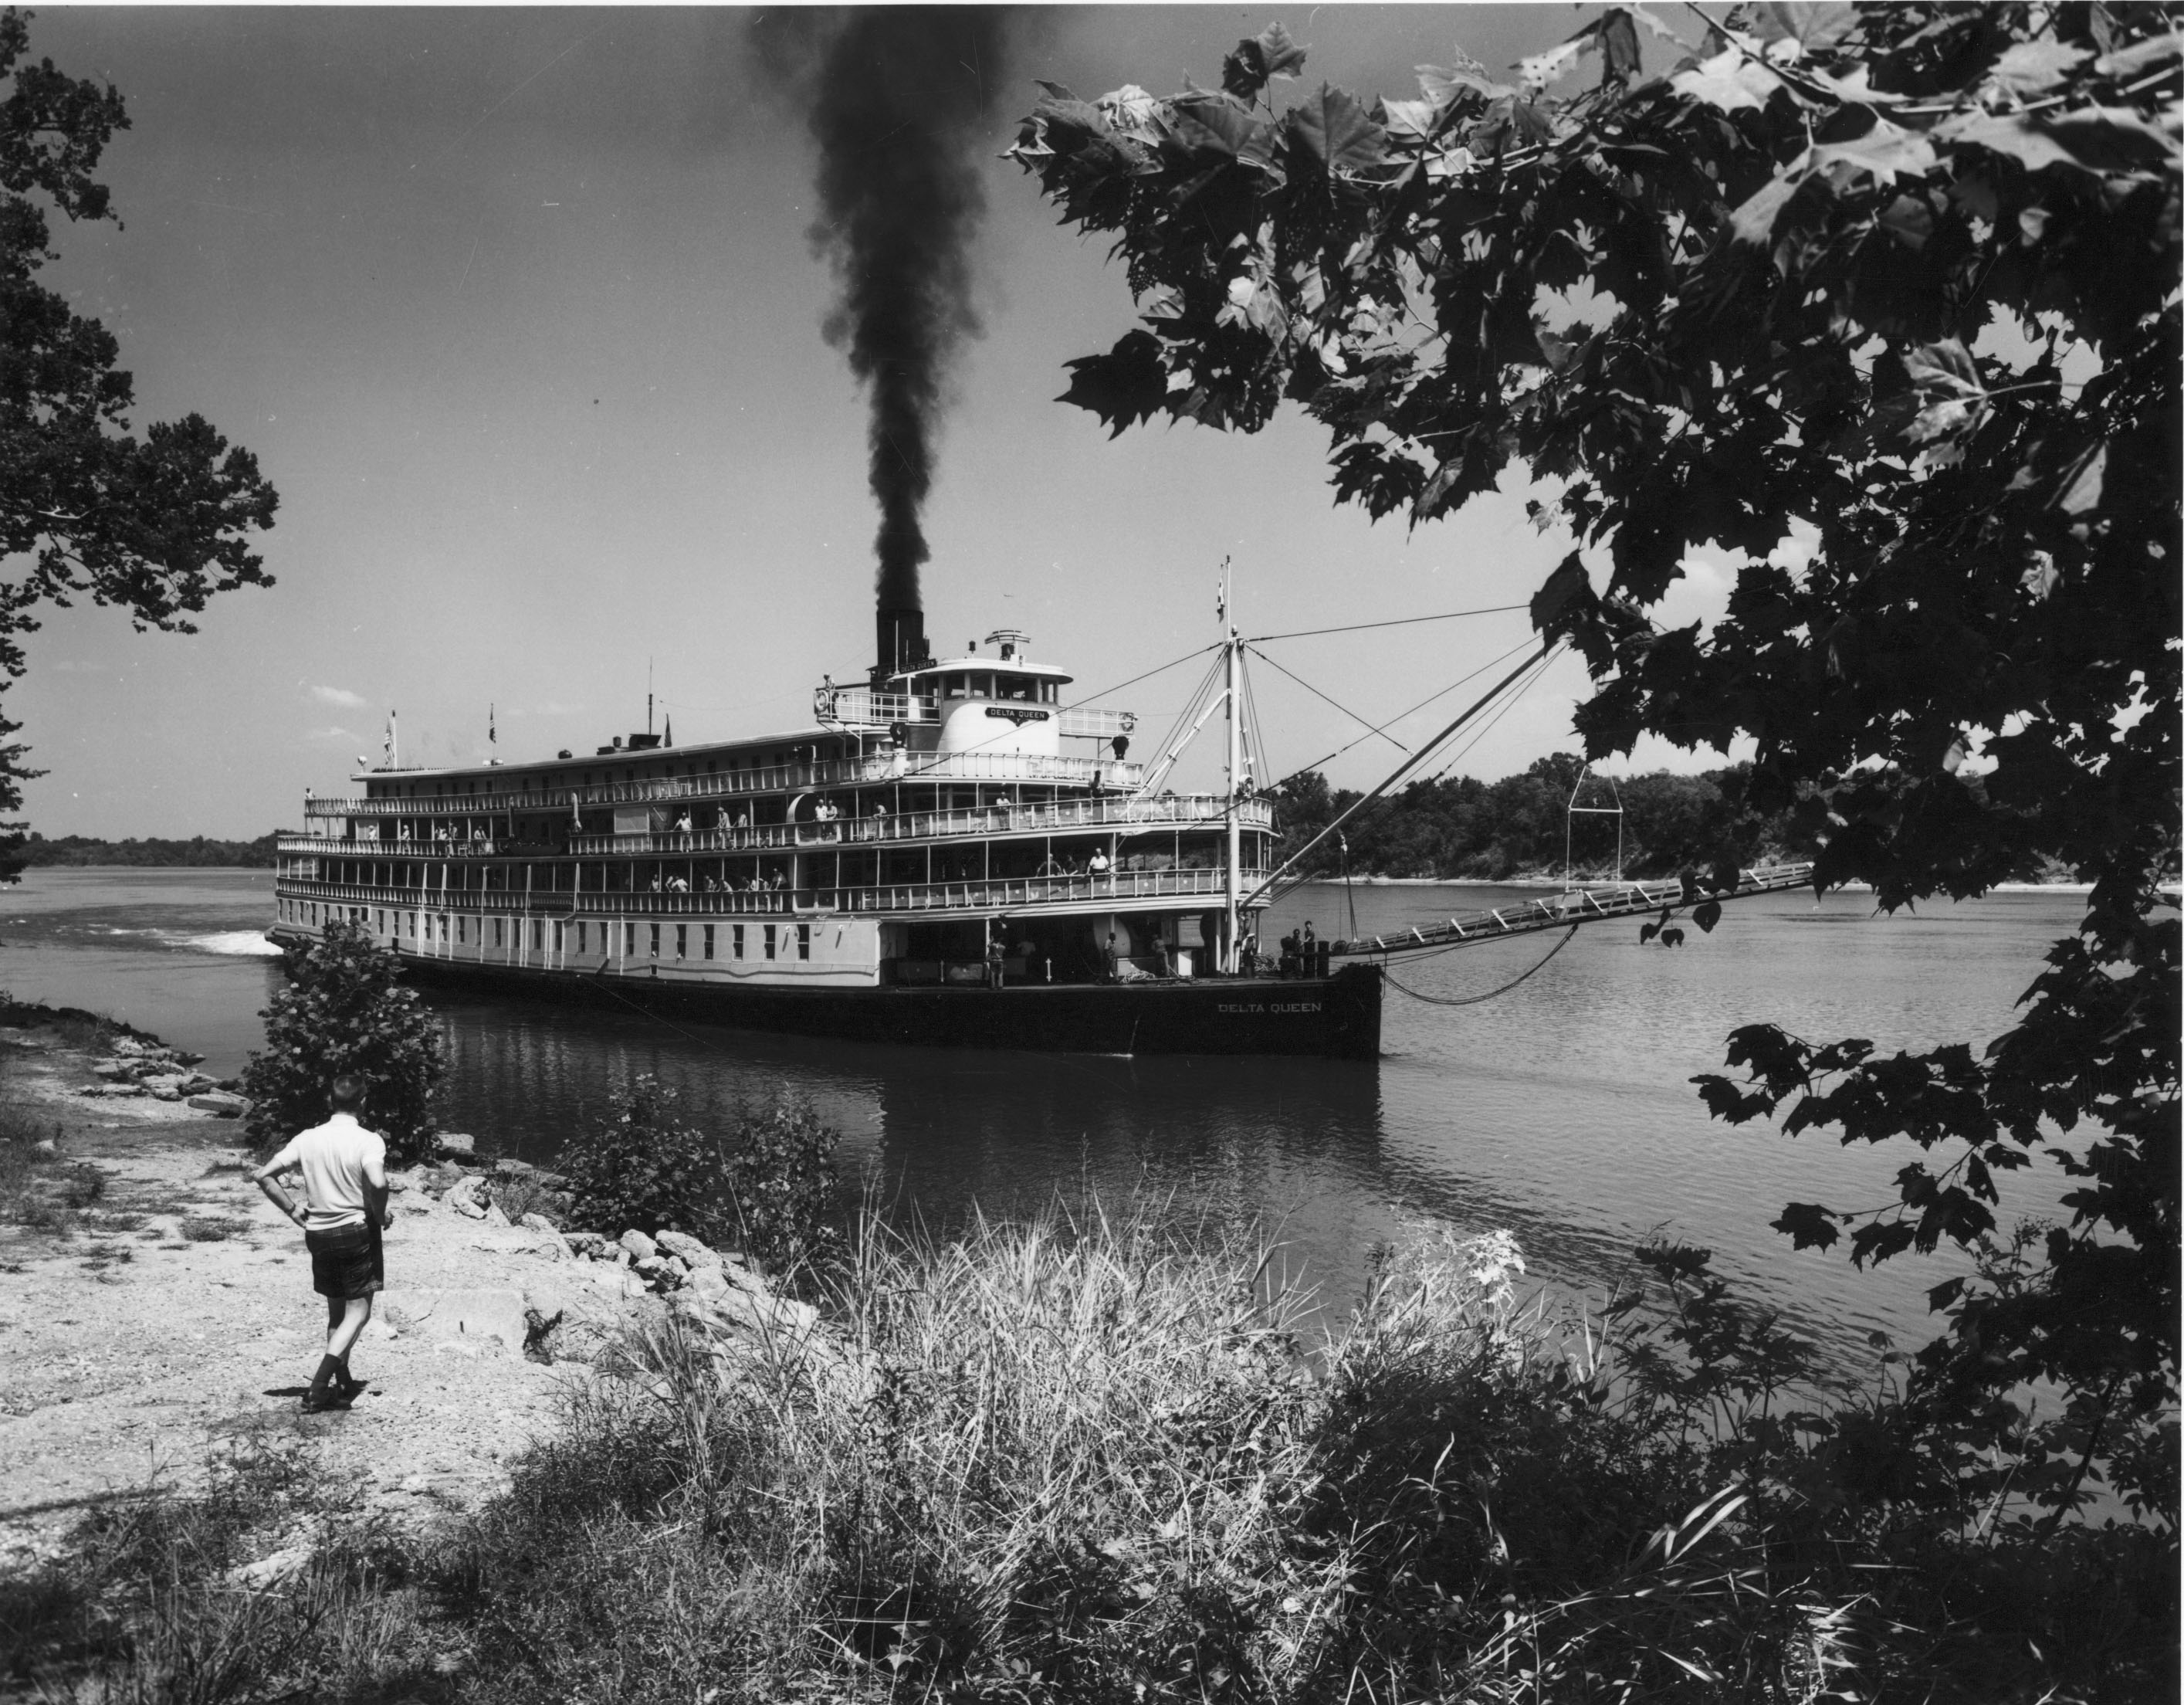 Delta Queen, Tennessee River, 1945